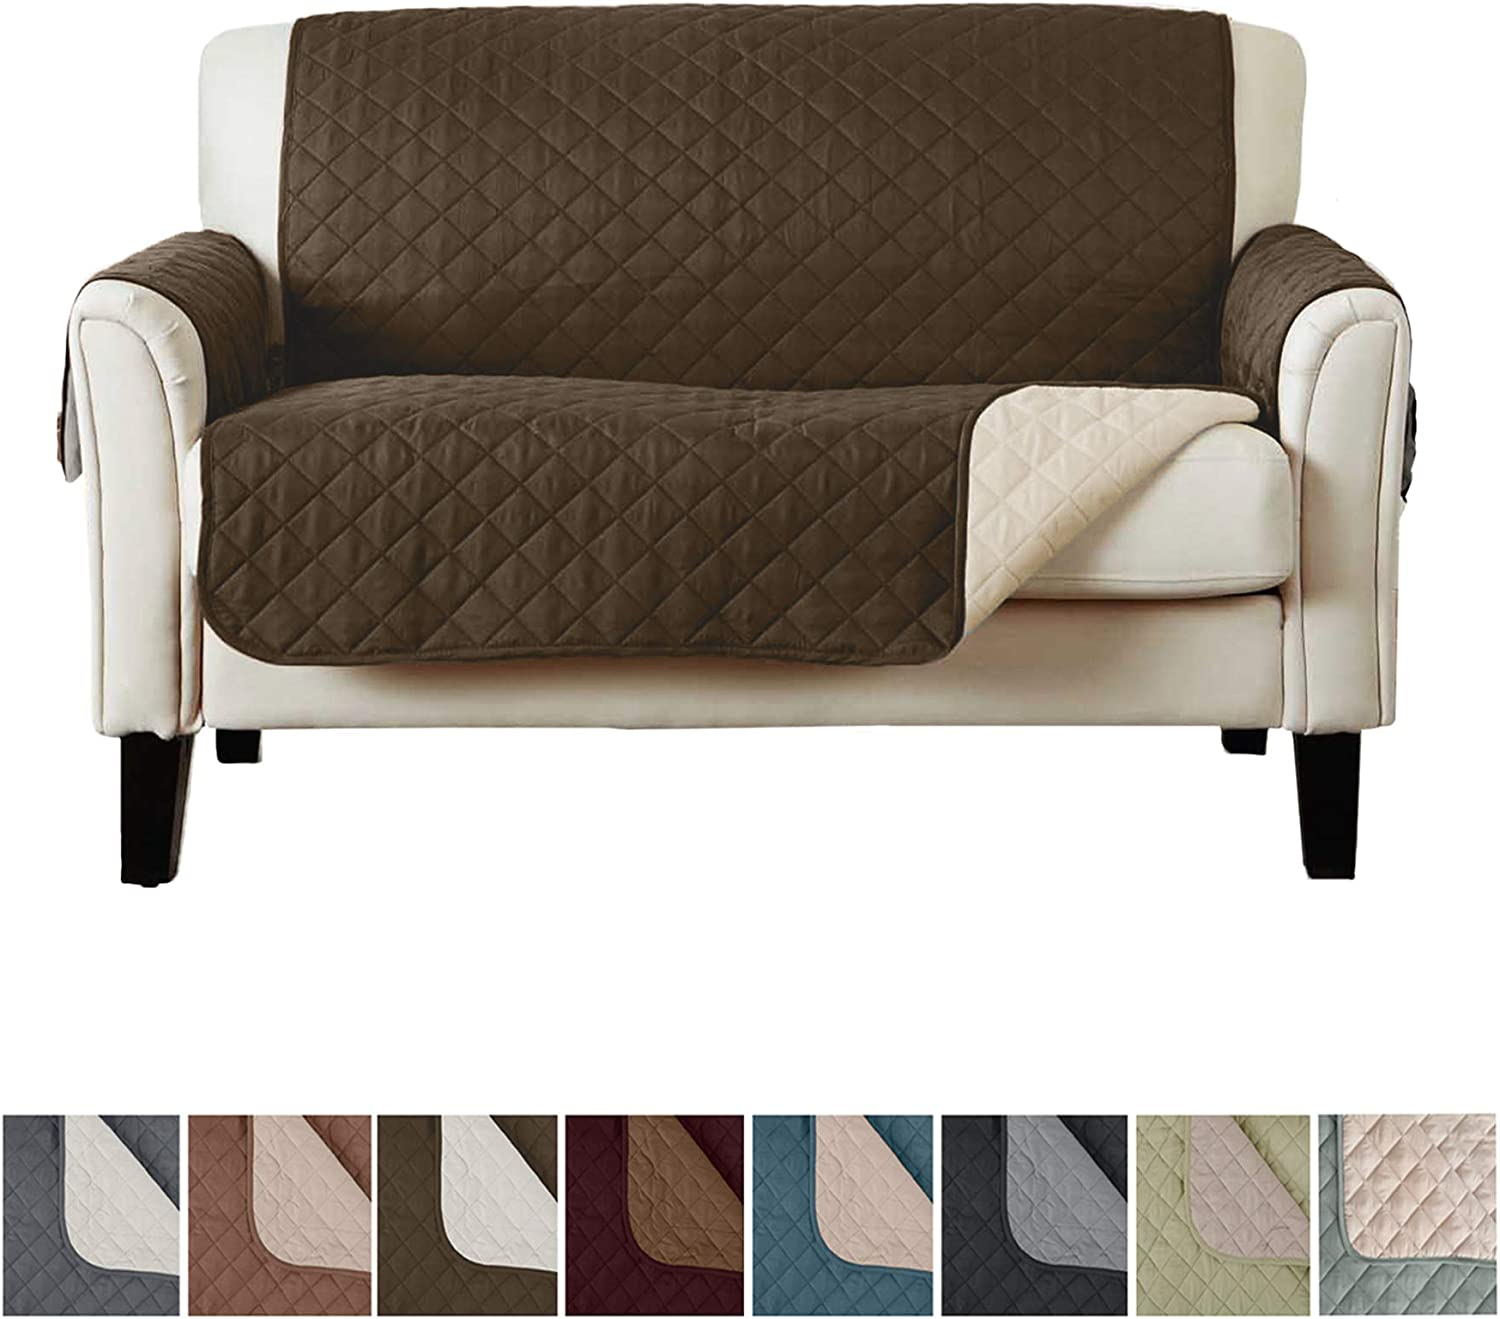 Sofa Dove-Bordeaux Sofa Cover Waterproof Quilted Reversible Mod